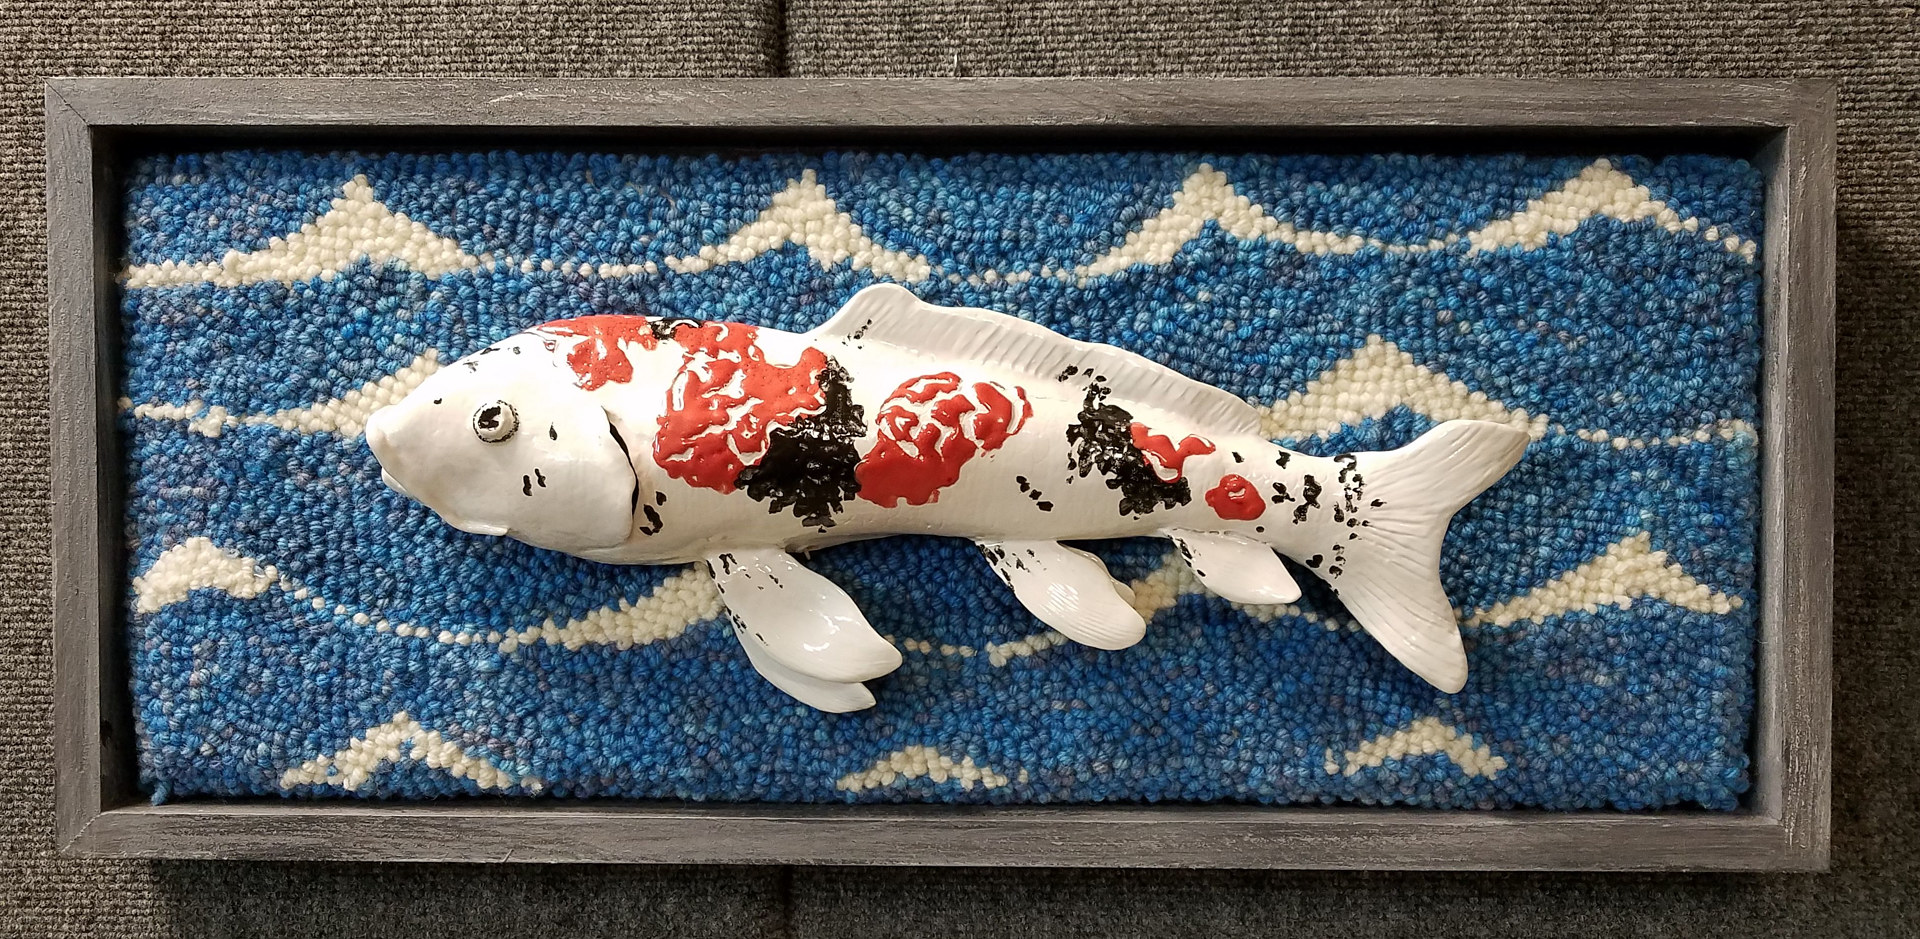 Mounted Koi by Valerie Johnson